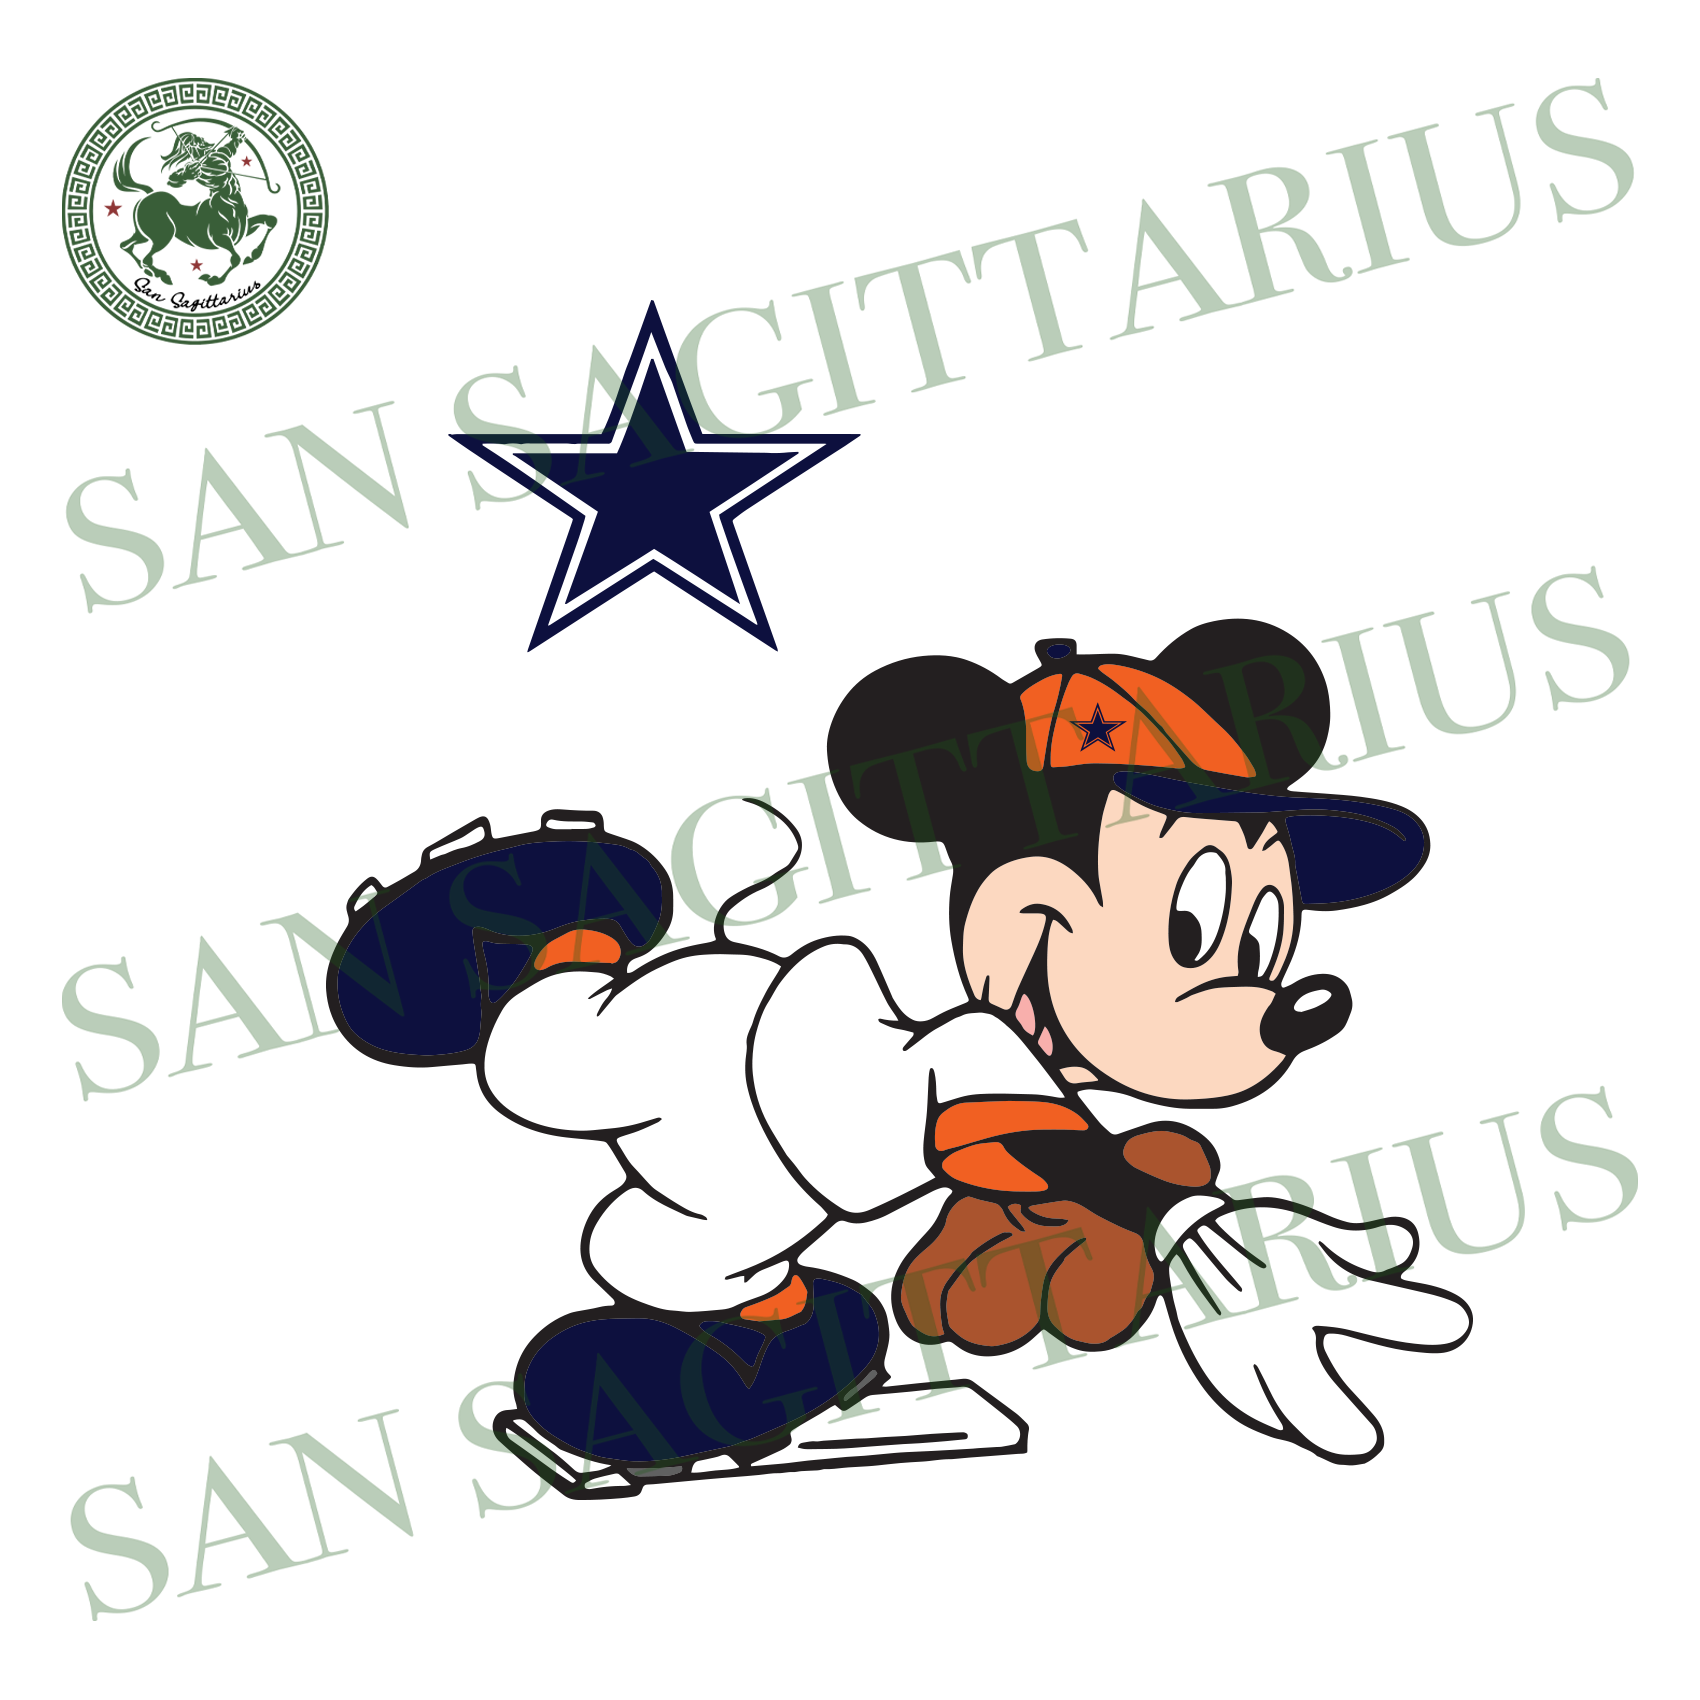 Dallas Cowboys Logo And Mickey, Sport Svg, NFL Football Svg, NFL Svg, NFL Sport, Dallas Cowboys Svg, Dallas Cowboys, Dallas Cowboys NFL Lover, Dallas Cowboys NFL Svg, Football Svg, Football L